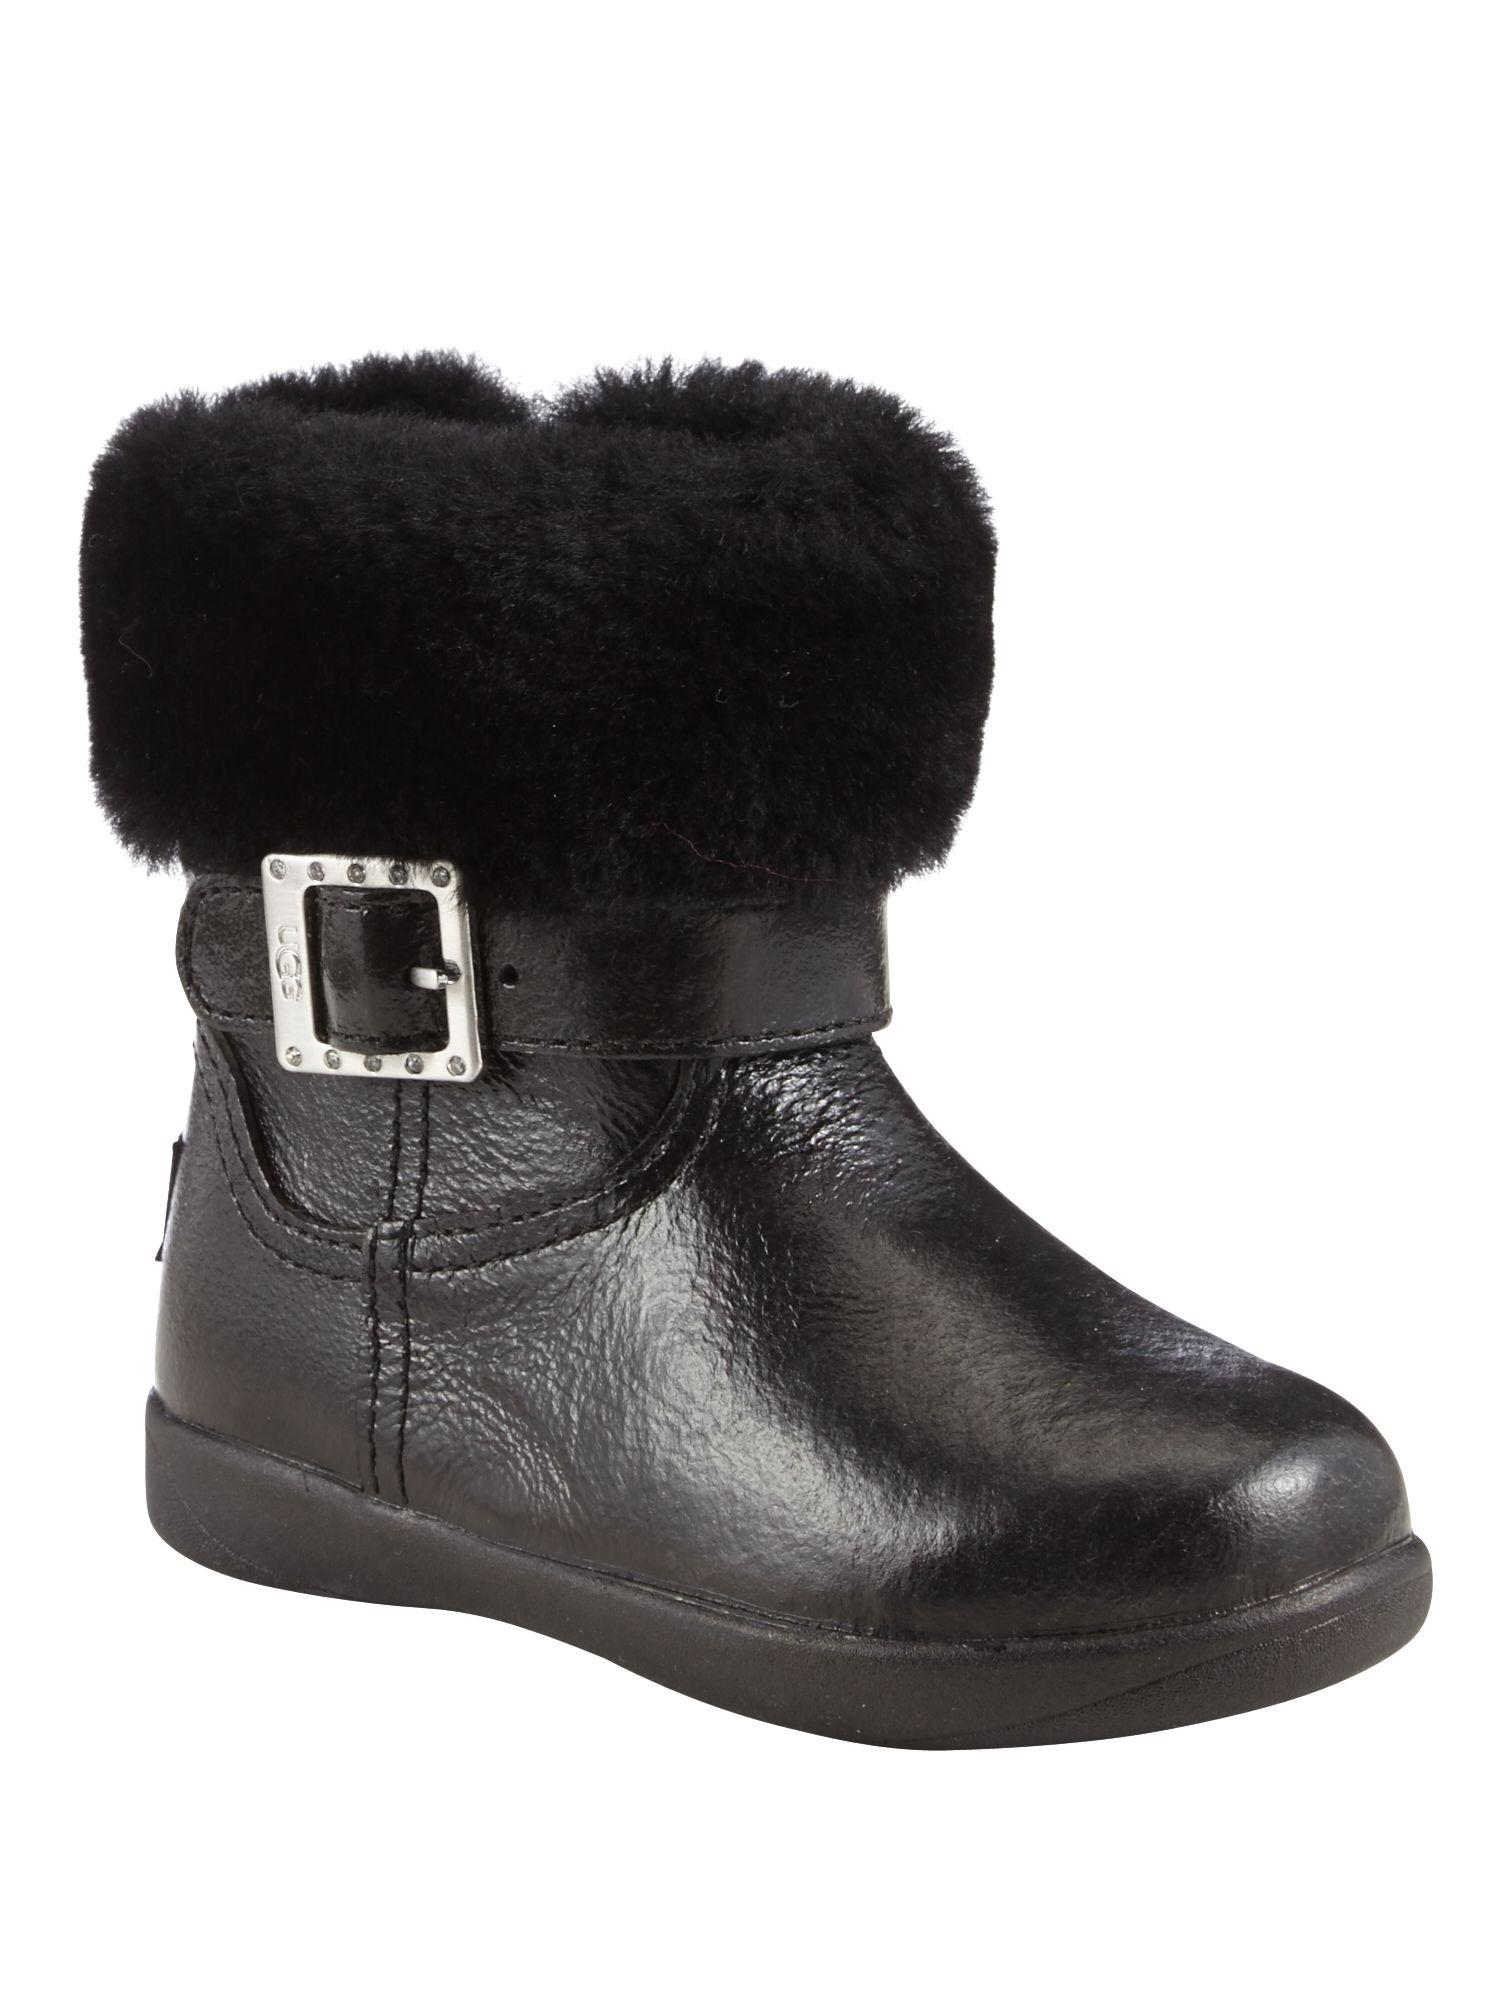 UGG. Women's Black Girls Boots With Diamante Buckle